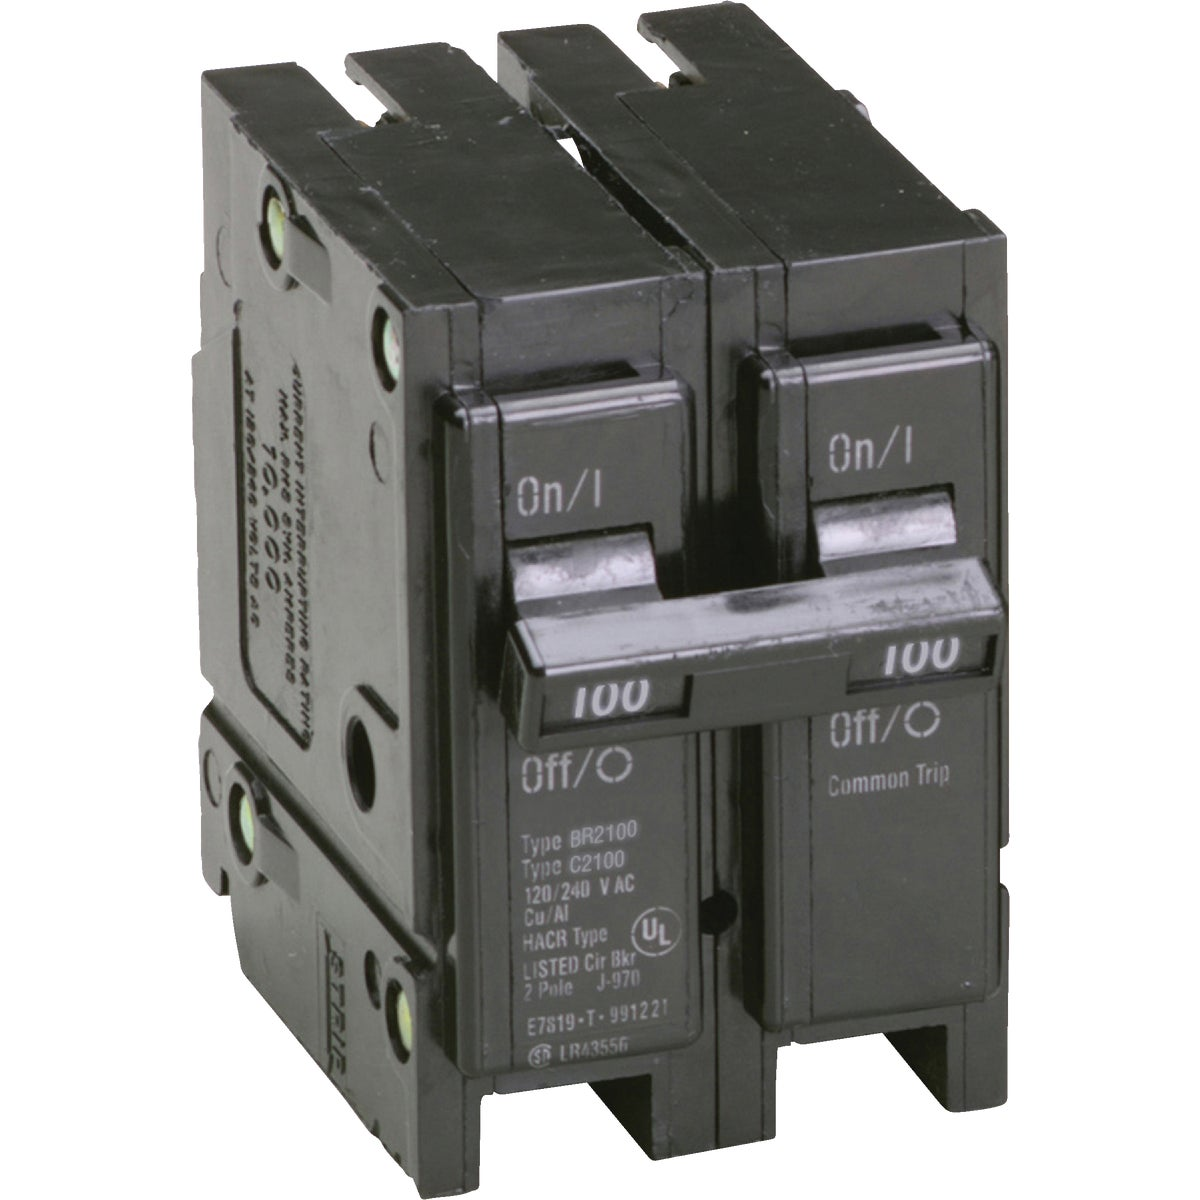 100A 2P CIRCUIT BREAKER - BR2100 by Eaton Corporation